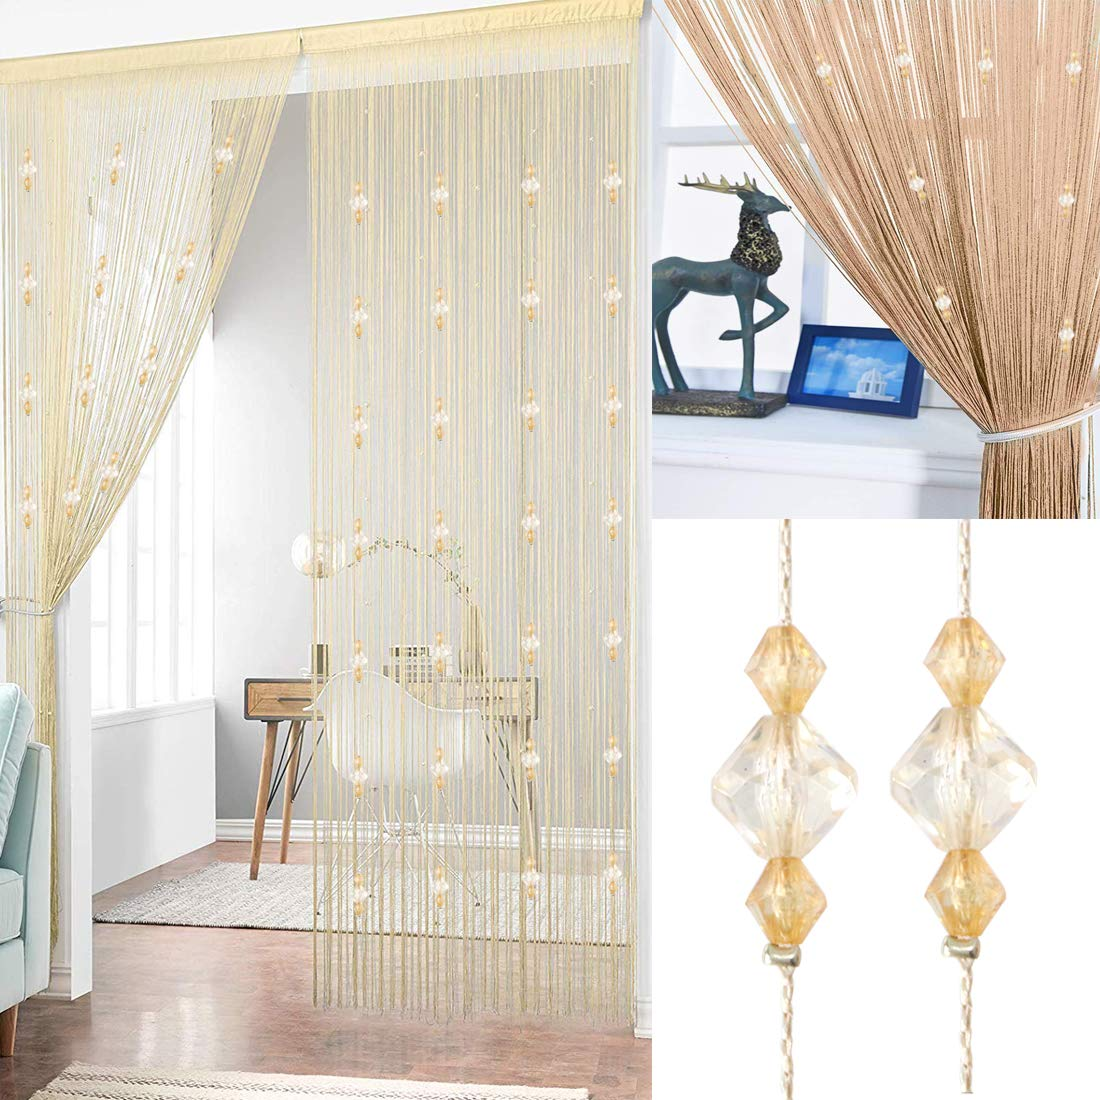 Timere Crystal Beaded Curtain Tassel Curtain - Partition Door Curtain Beaded String Curtain Door Screen Panel Home Decor Divider Crystal Tassel Screen 90x200cm (Champagne#)